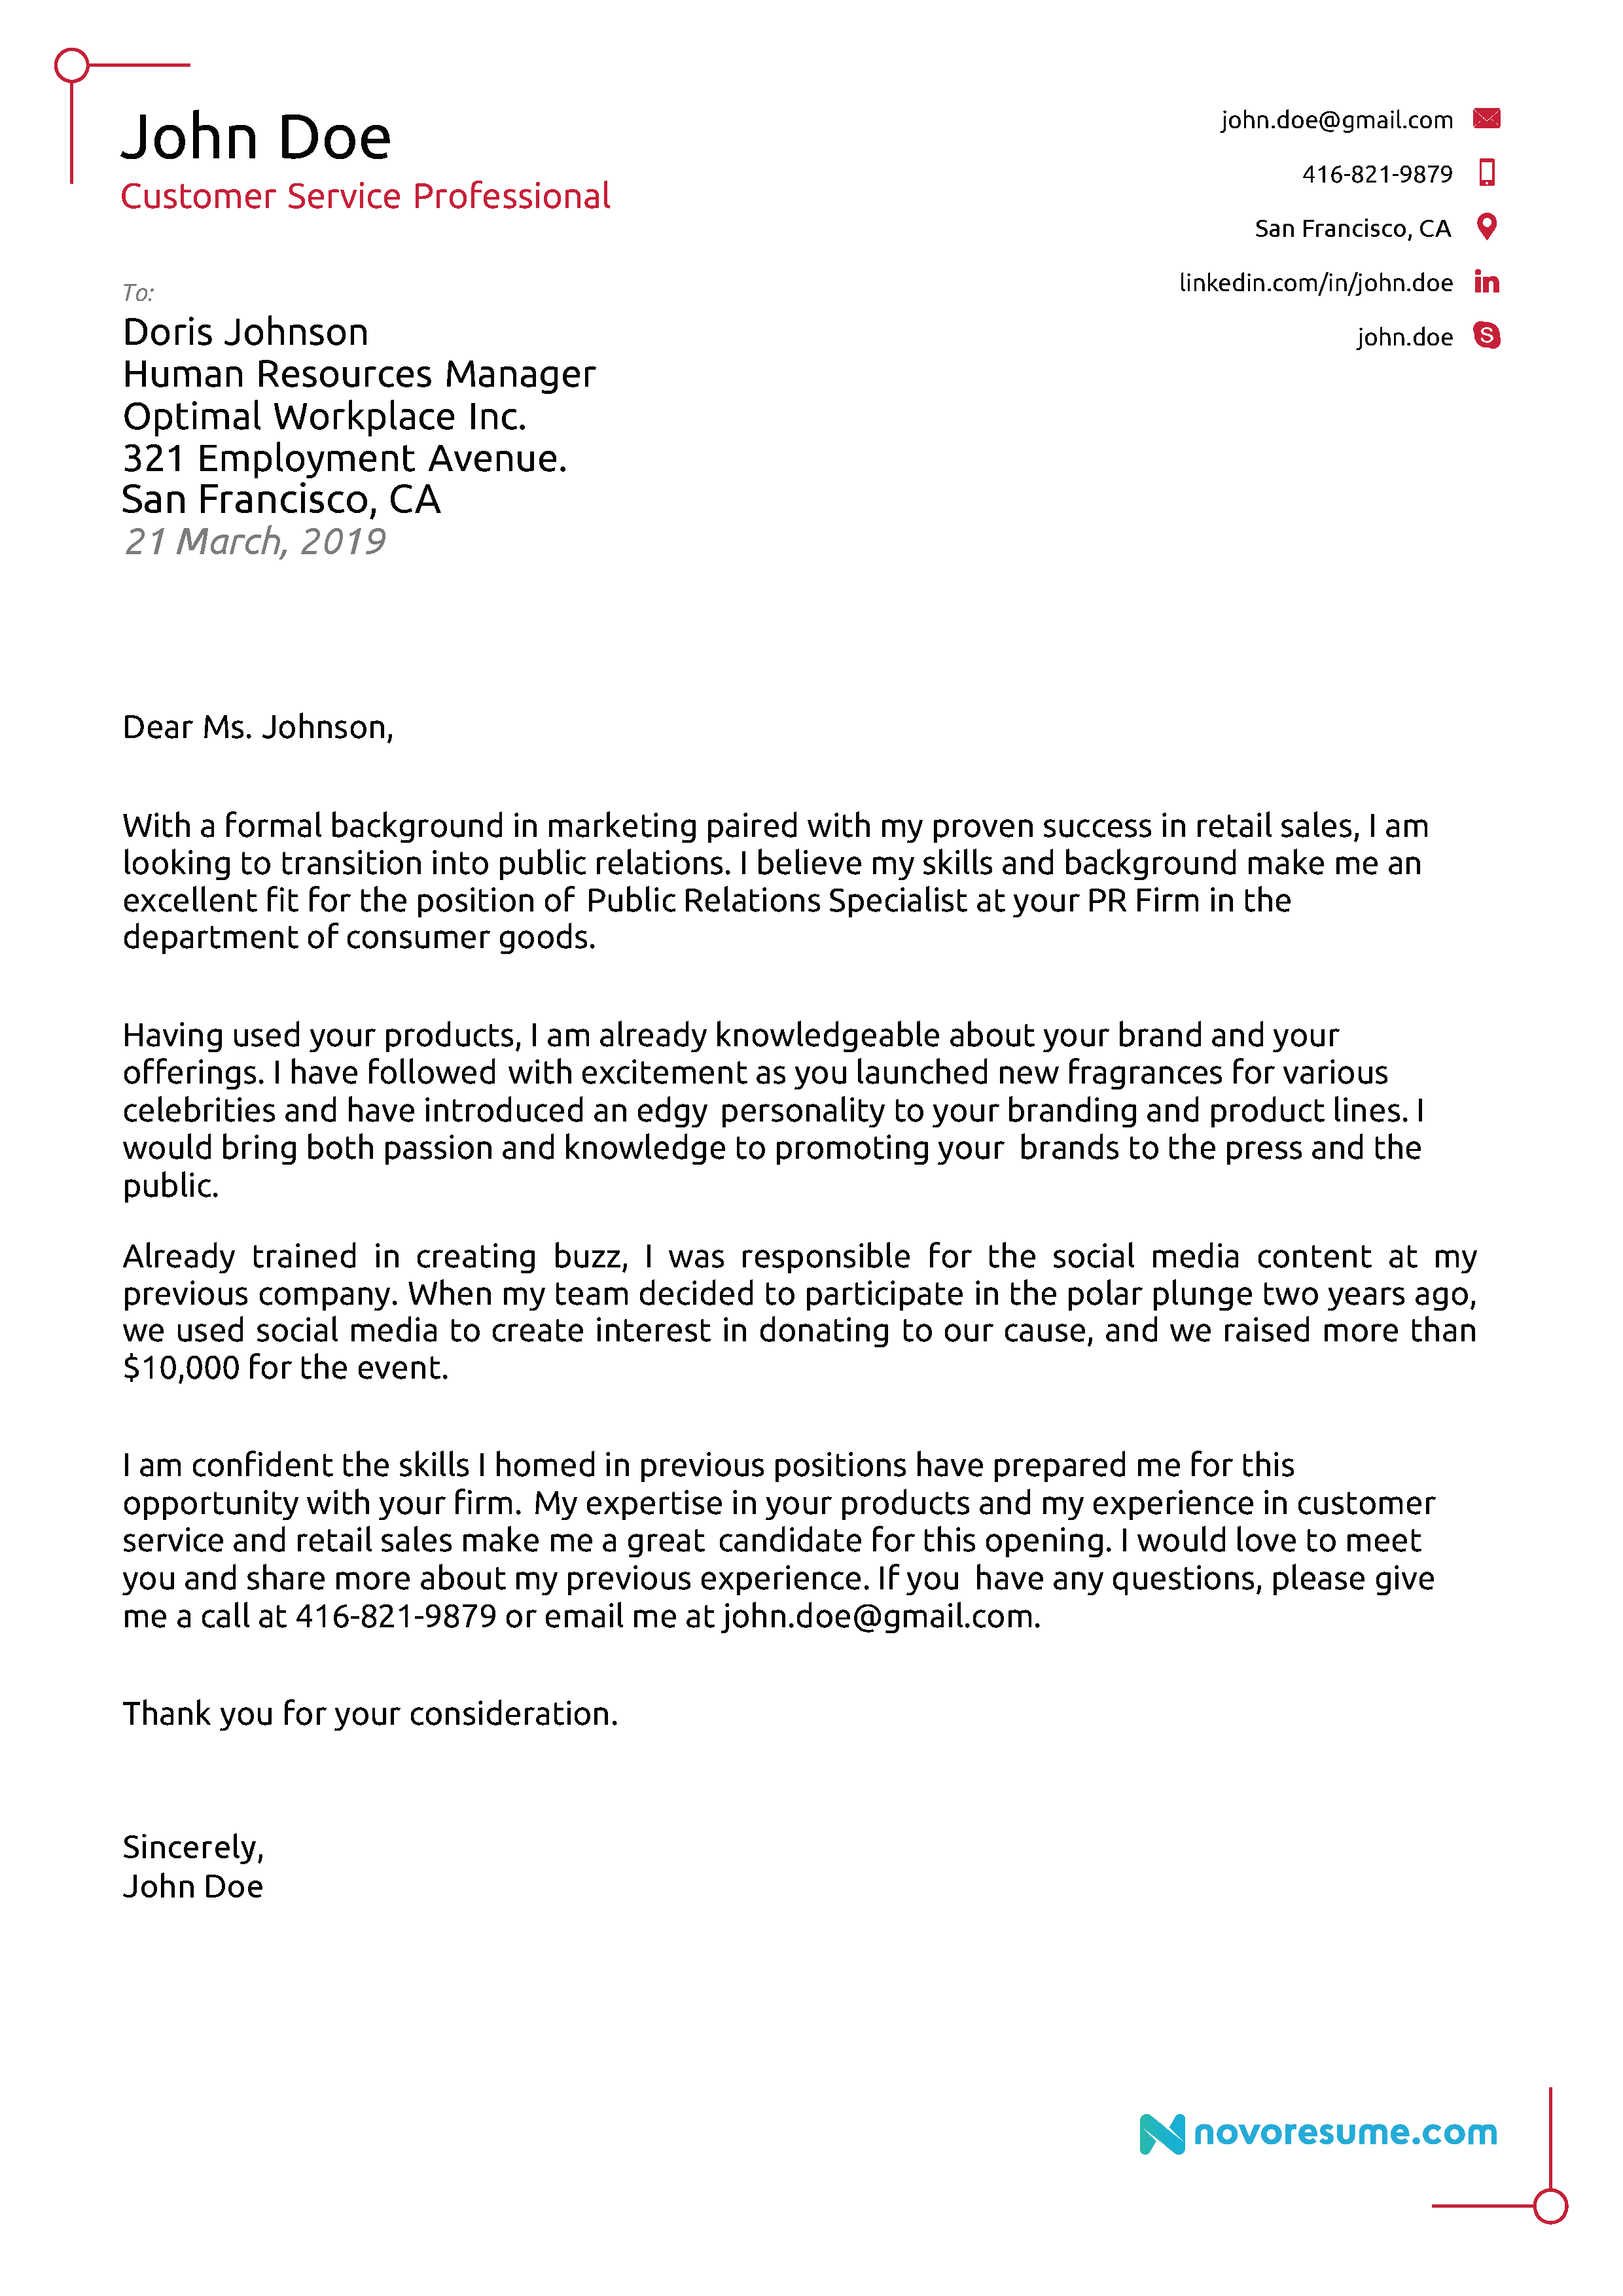 Best Cover Letter Template 2019